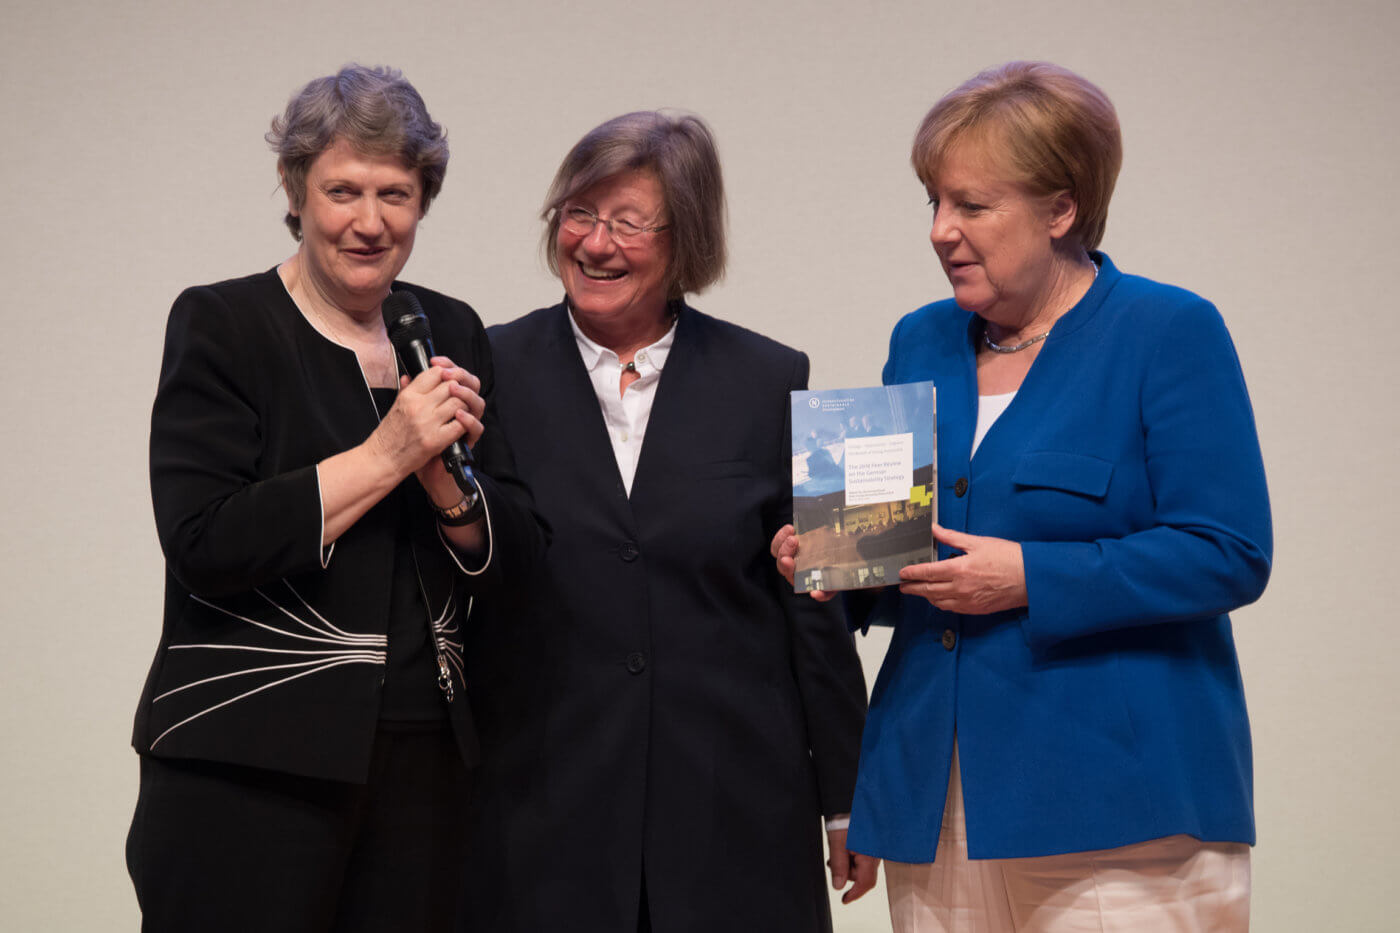 The Chair of the International Peer Review Group, Helen Clark (left), has presented the group's report to German Chancellor Angela Merkel at the RNE Annual Conference on 4 June 2018. Photo: Ralf Rühmeier, © German Council for Sustainable Development